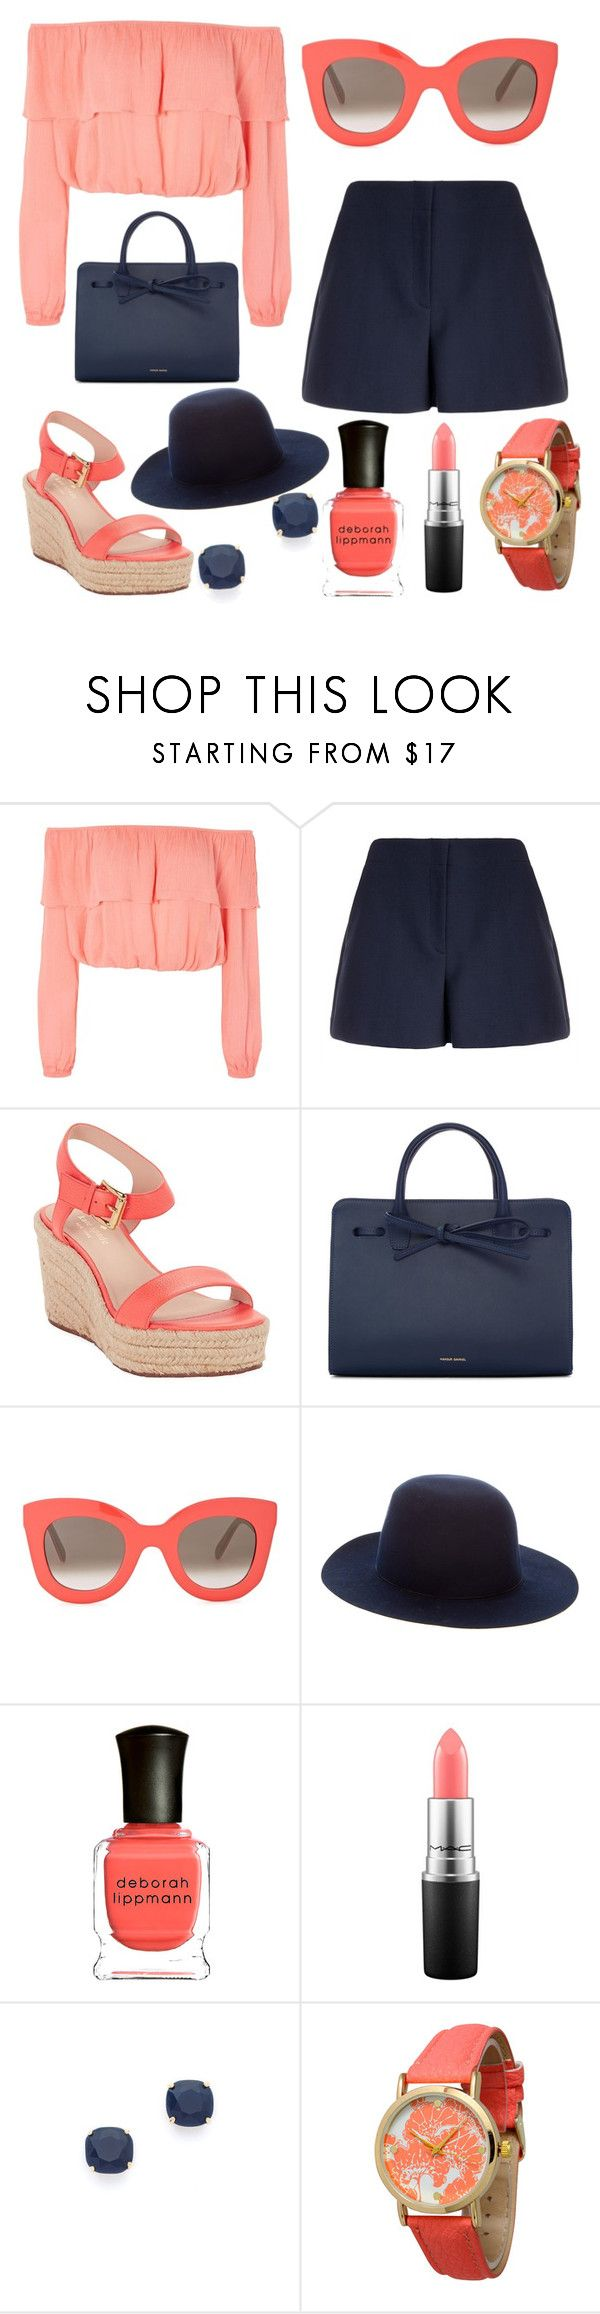 """navy and coral"" by k26brooks ❤ liked on Polyvore featuring Glamorous, Theory, Kate Spade, Mansur Gavriel, CÉLINE, Filù Hats, Deborah Lippmann, MAC Cosmetics and Olivia Pratt"